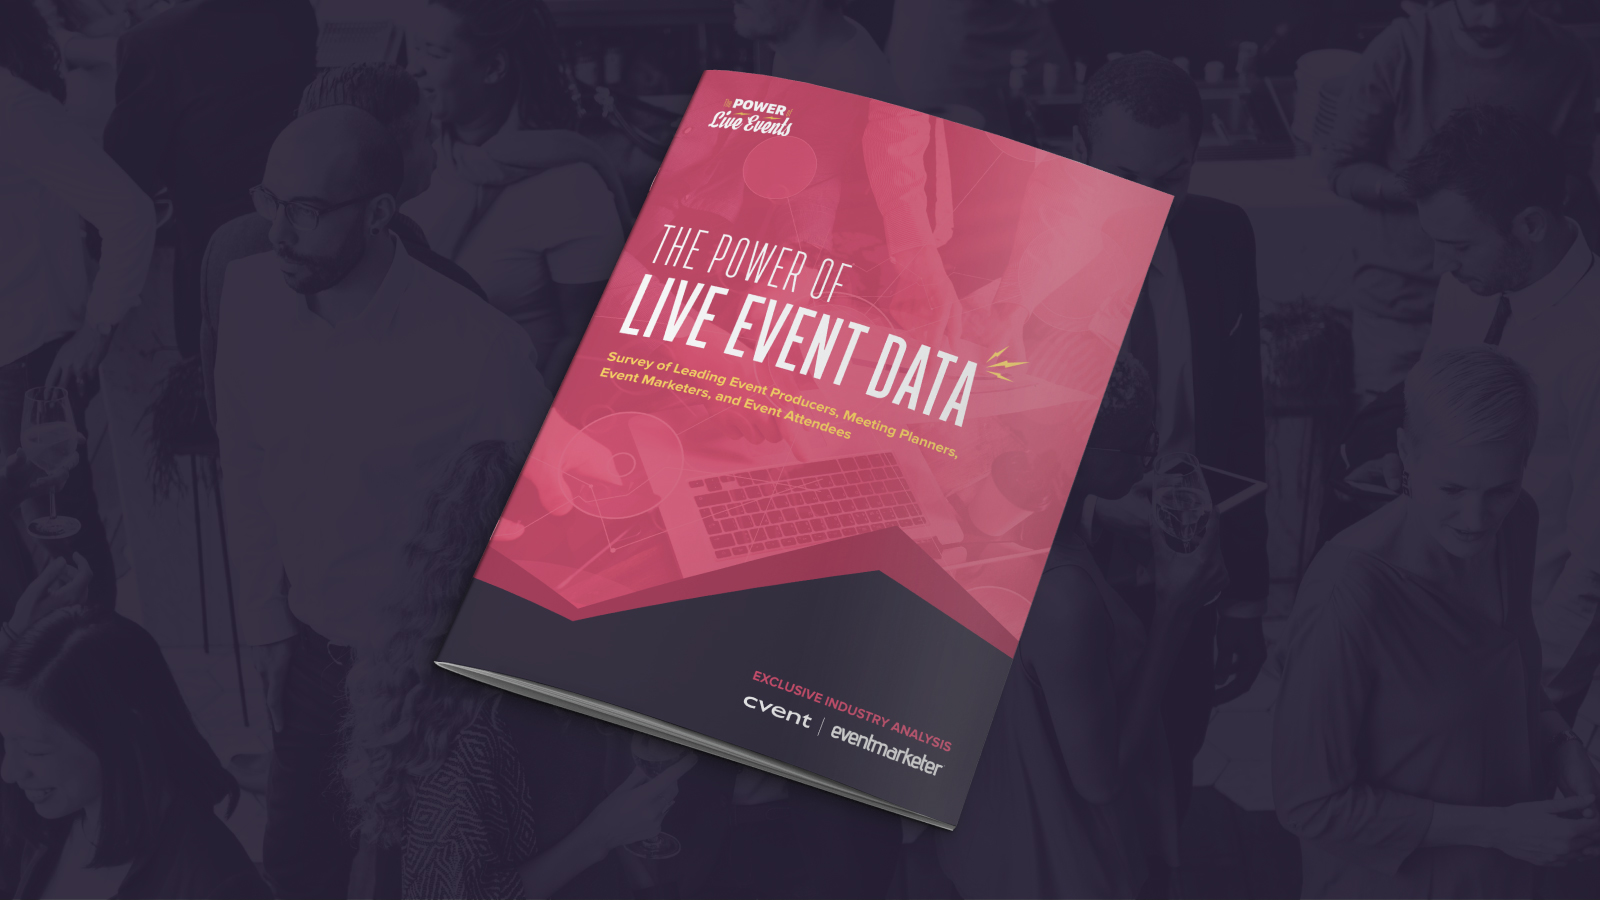 The Power of Live Event Data